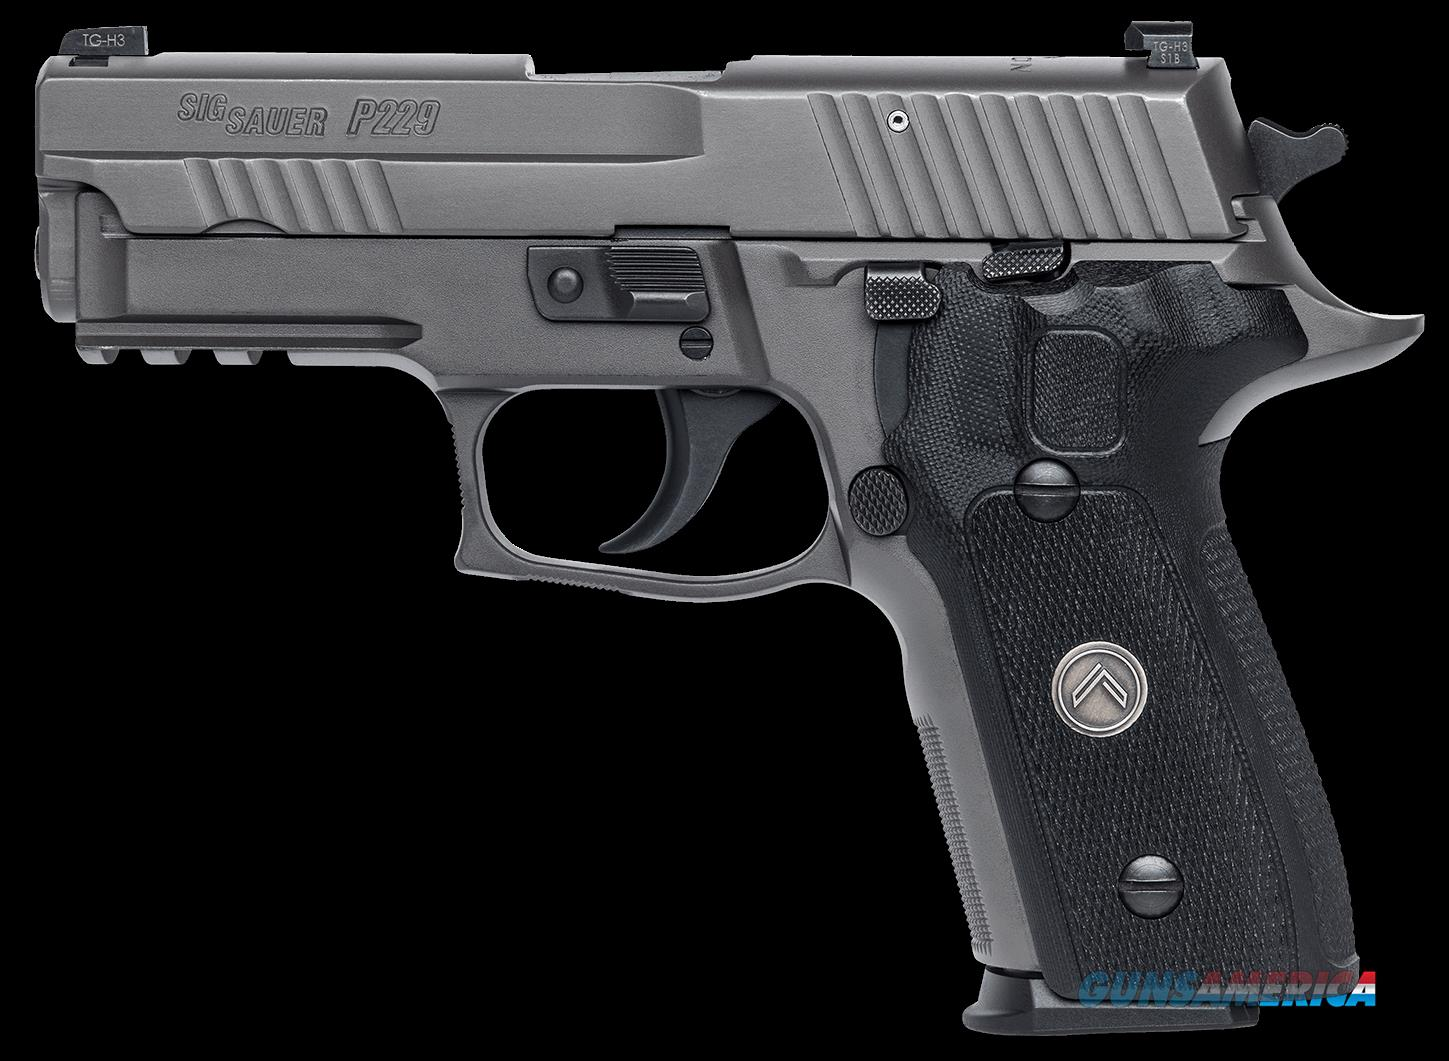 "Sig Sauer E29R9LEGION P229 Compact Legion Single/Double 9mm Luger 3.9"" 15+1 Black G10 Grip Gray PVD  Guns > Pistols > Sig - Sauer/Sigarms Pistols > P226"